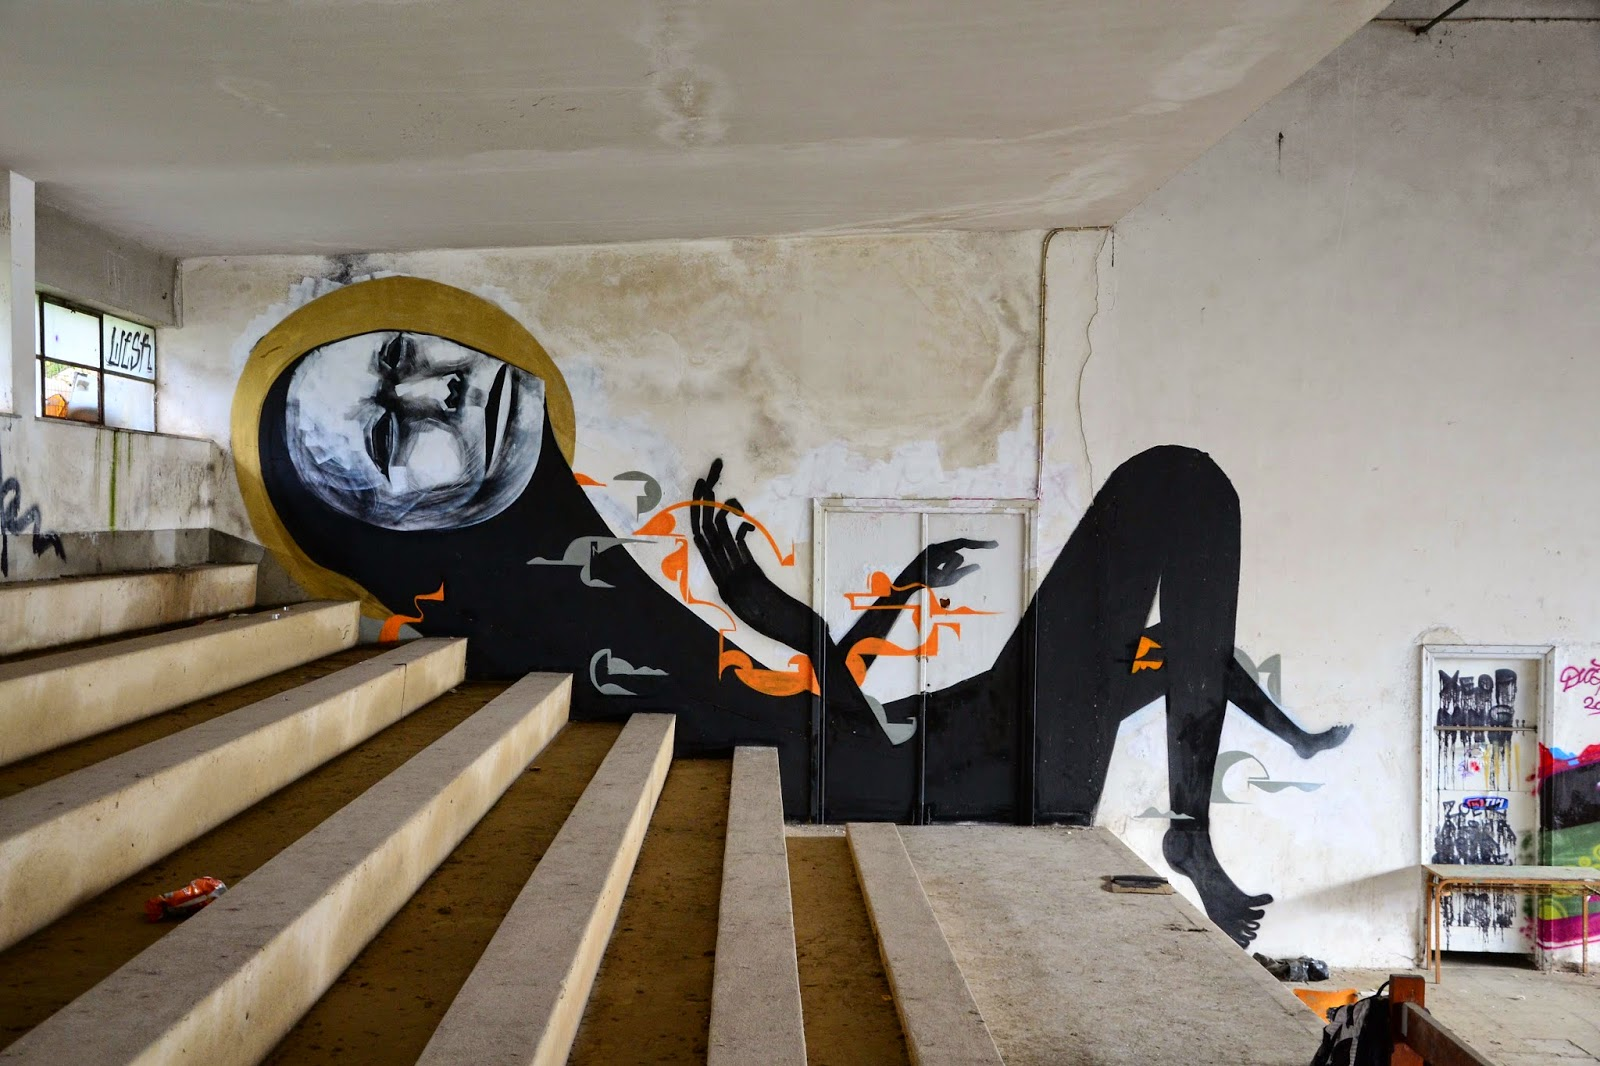 WESR is currently traveling around Greece where he managed to paint his way through several locations around the country.